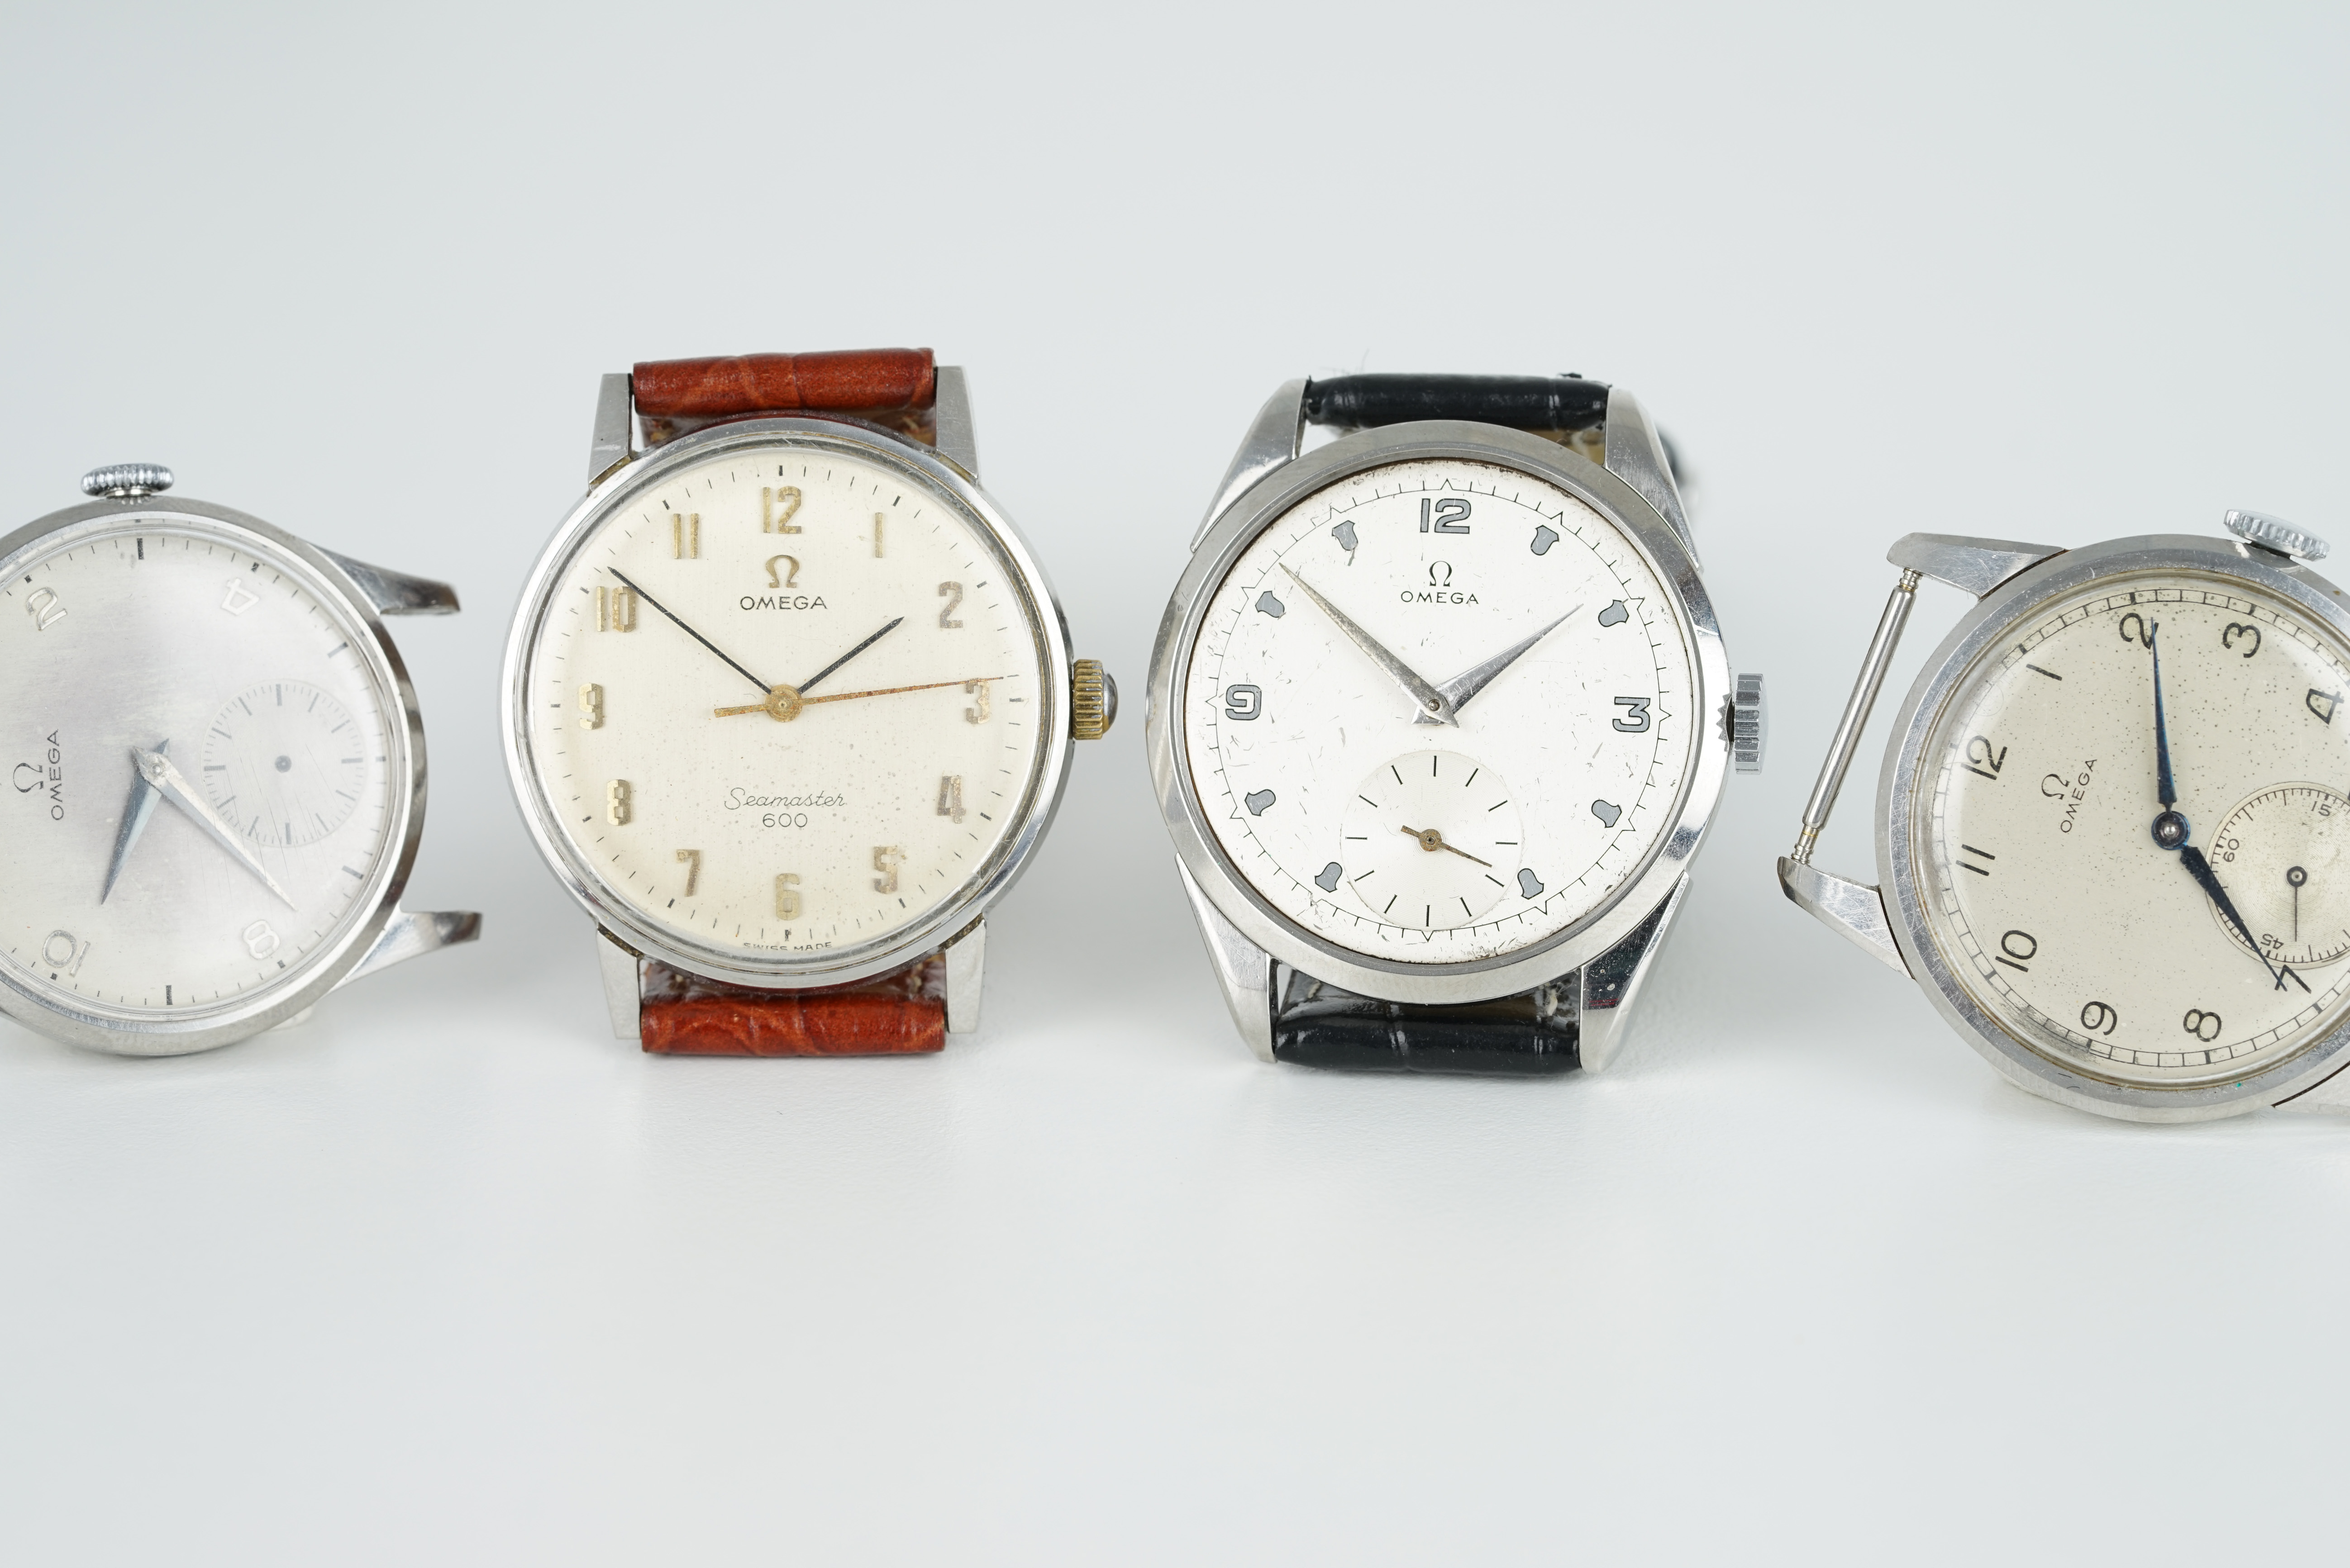 GROUP OF 4 OMEGA WRISTWATCHES, all stainless steel cases with manually wound movements inside, all